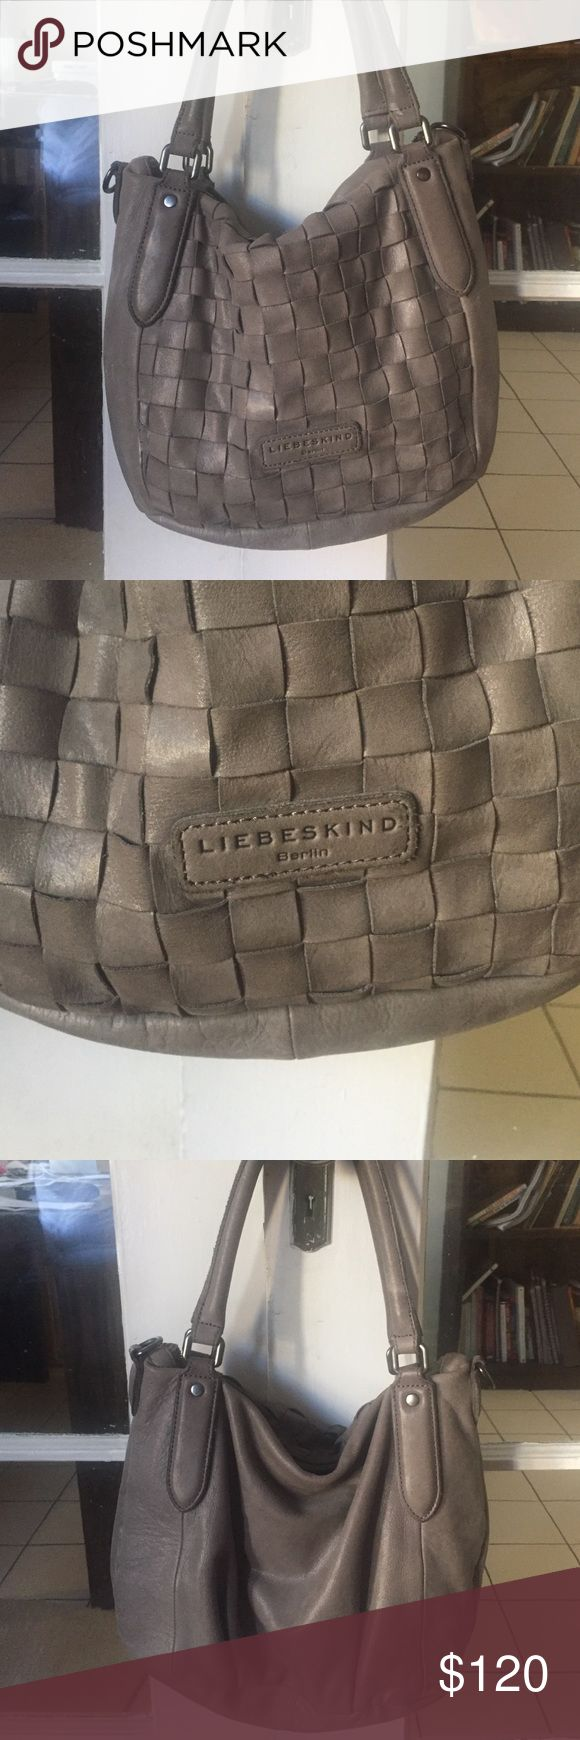 Liebeskind grey purse Hardly used! Great everyday bag. Liebeskind Bags Hobos